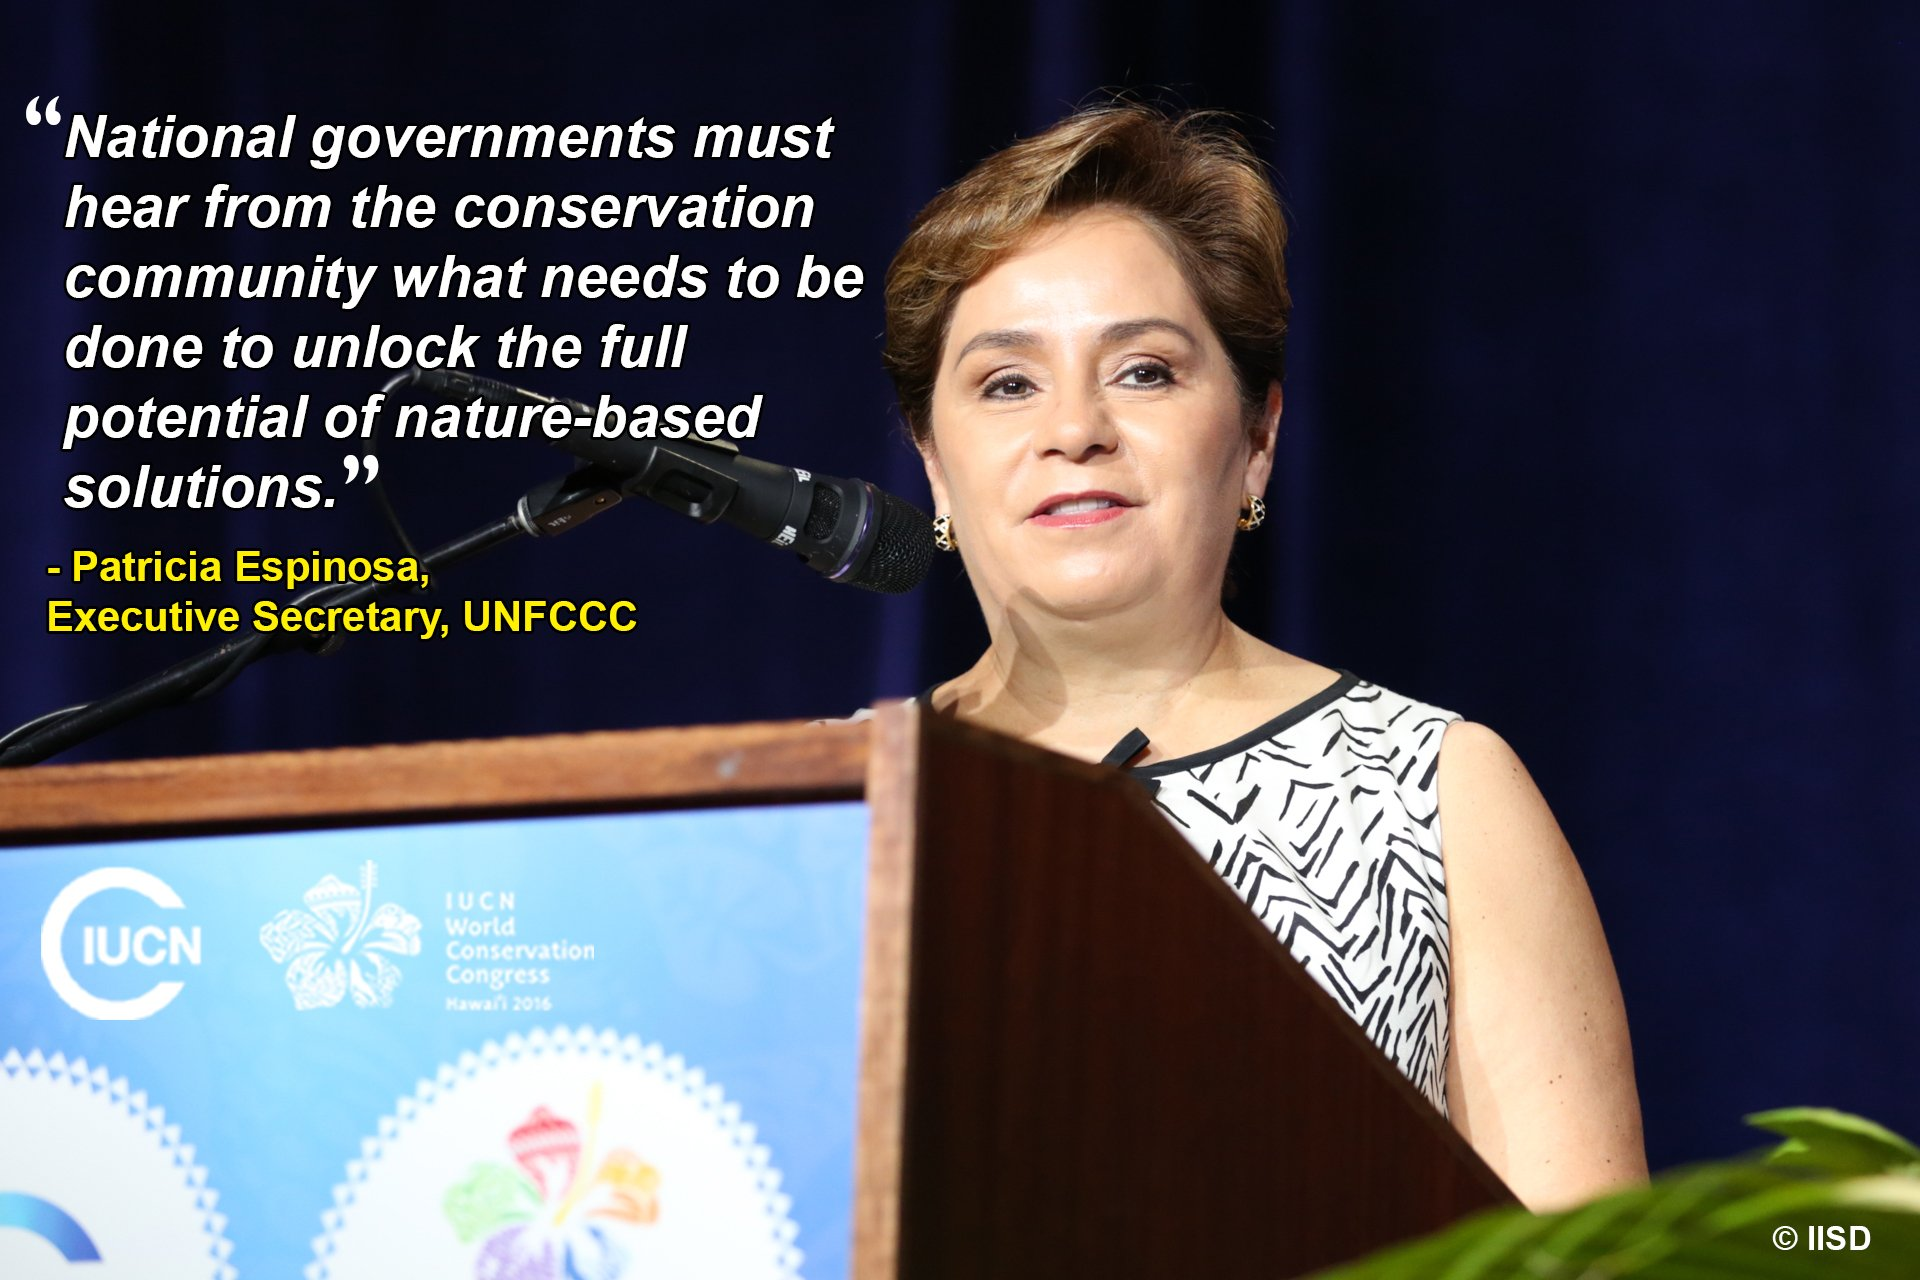 A call for action on nature-based solutions at #IUCNcongress. @PEspinosaC @UNFCCC #climatechange https://t.co/xSMHcboEgR